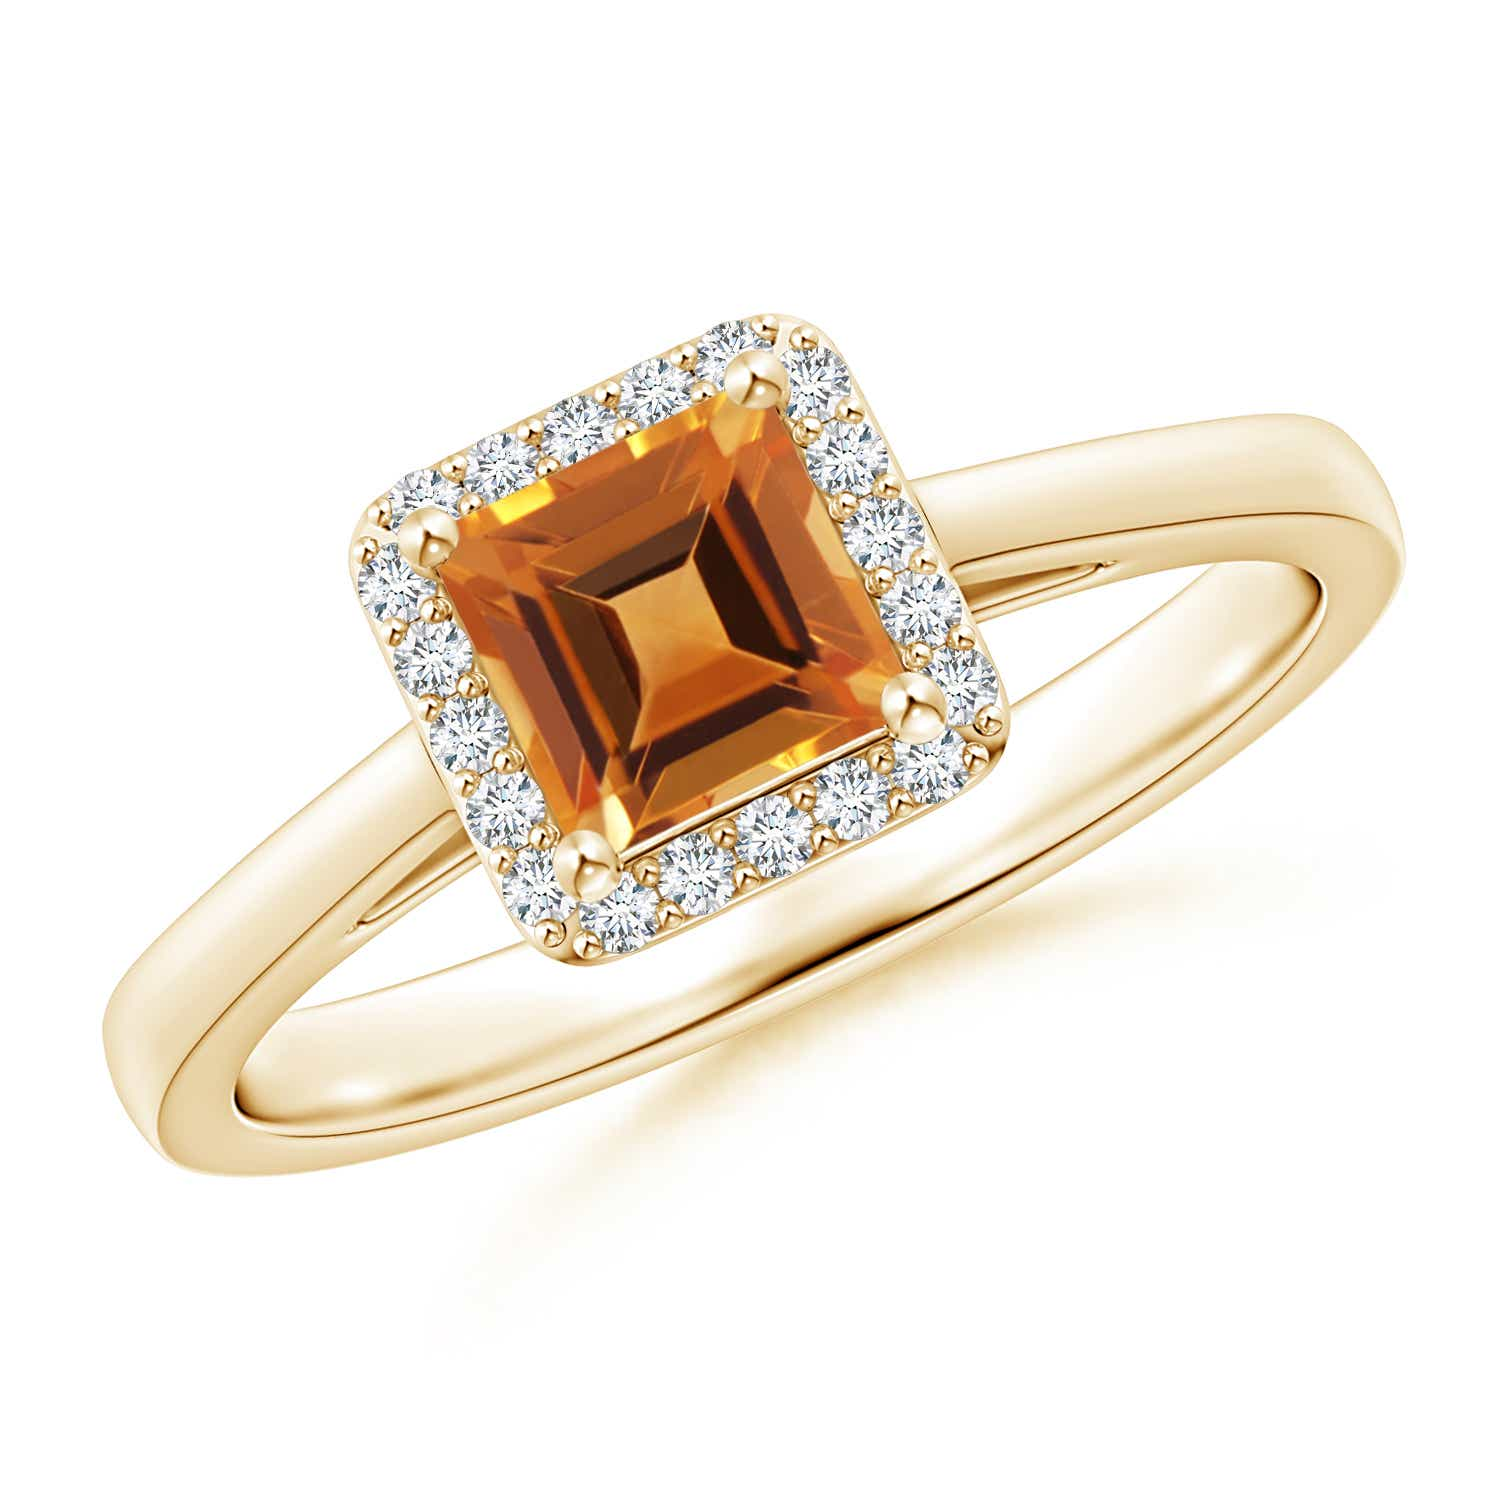 Classic Square-Cut Citrine Halo Ring - Angara.com